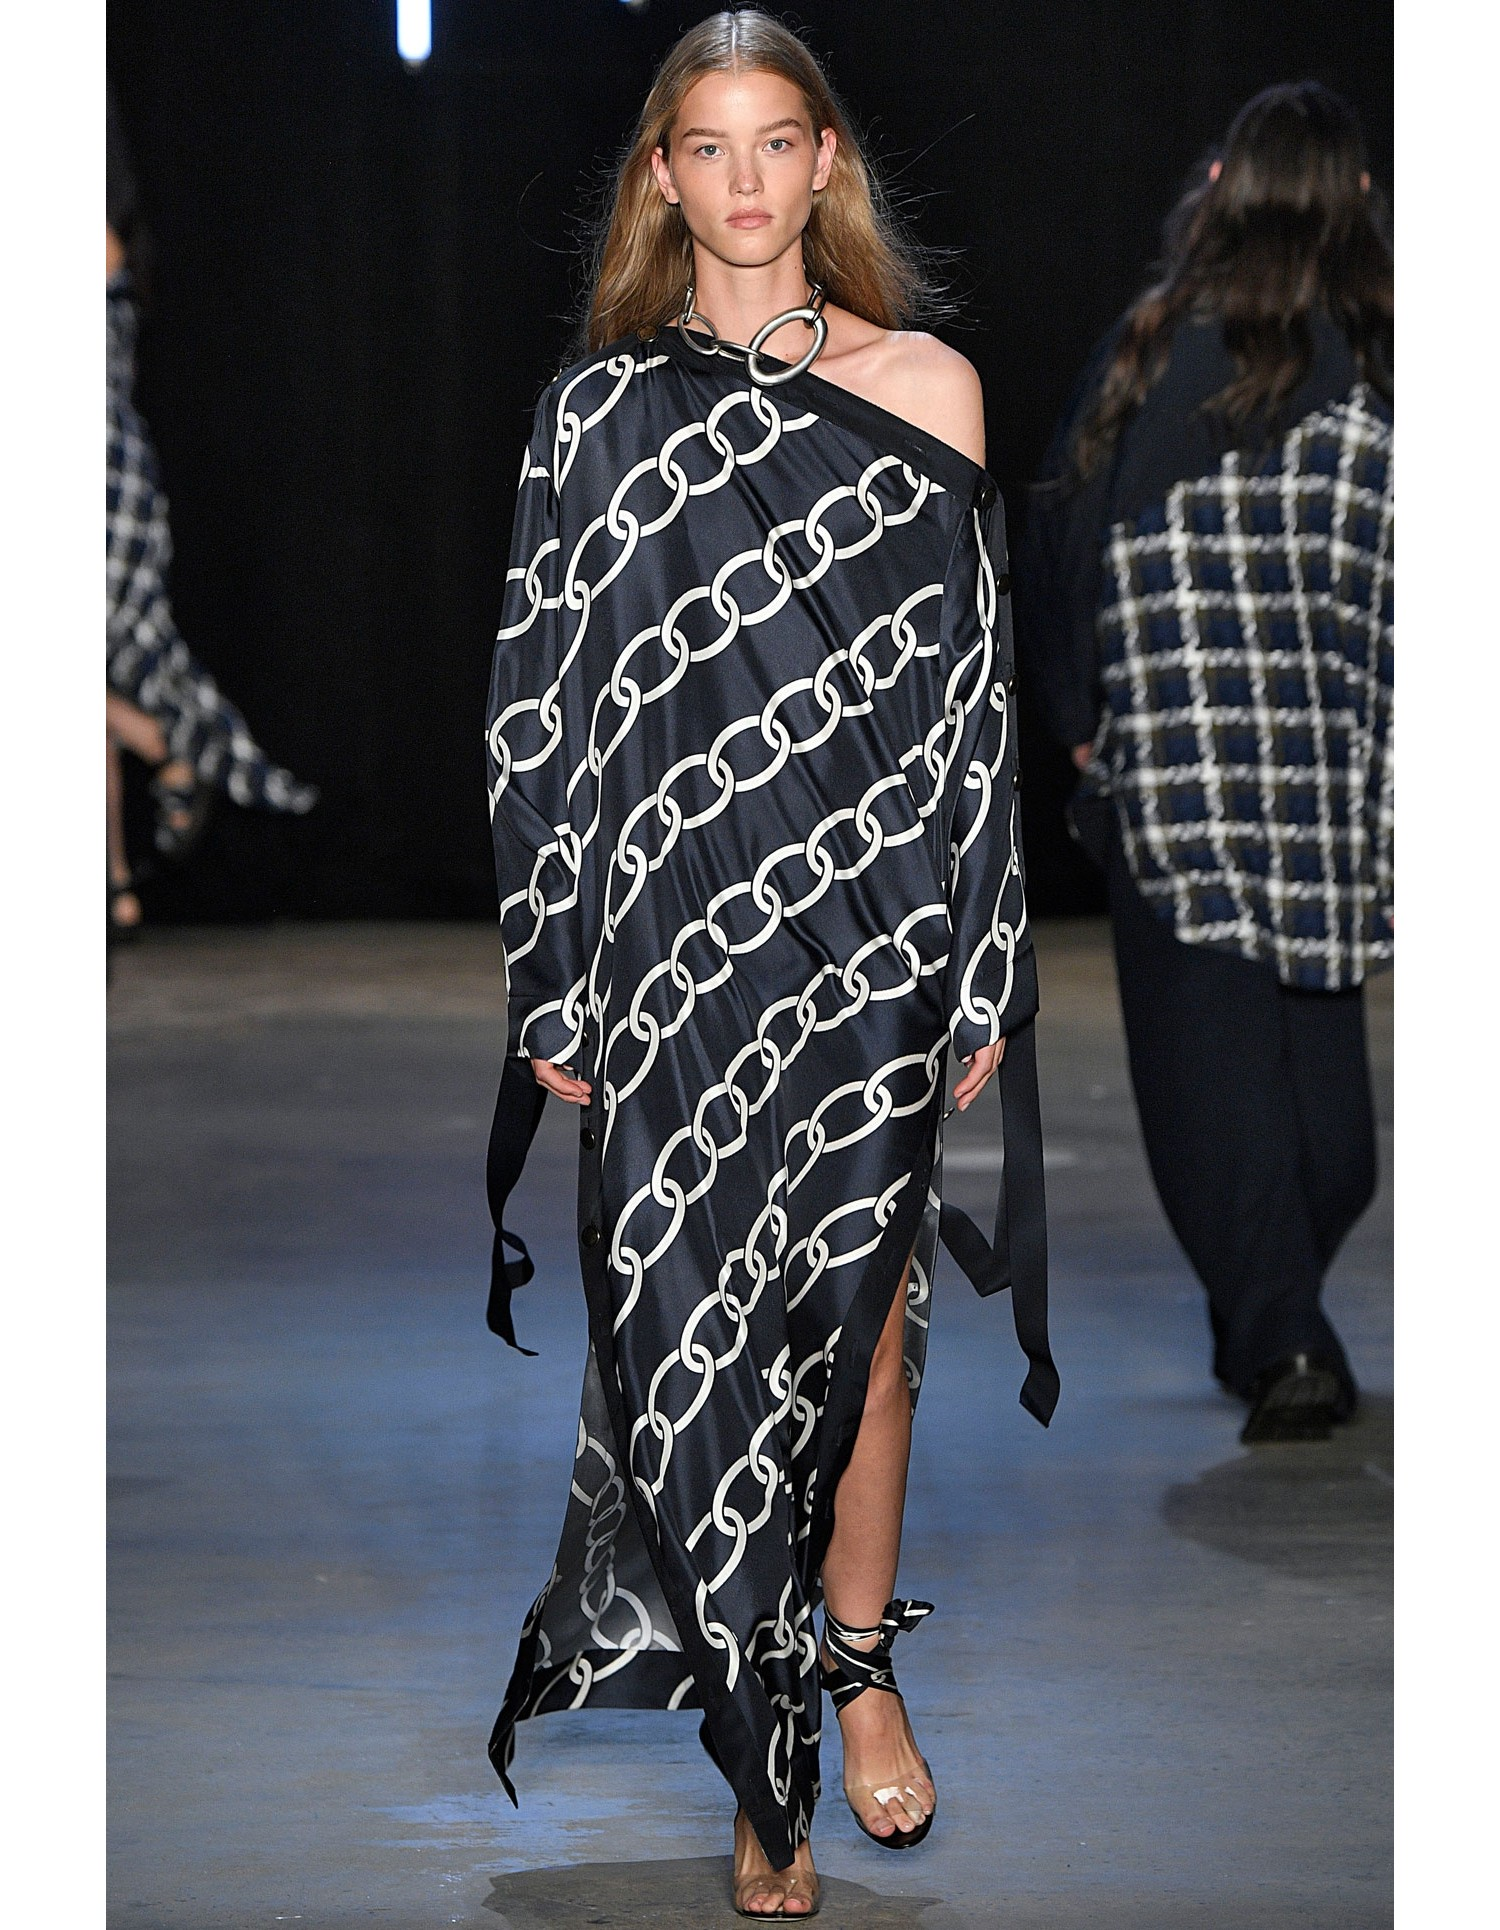 Monse Womens Chain Print Caftan on Runway Model